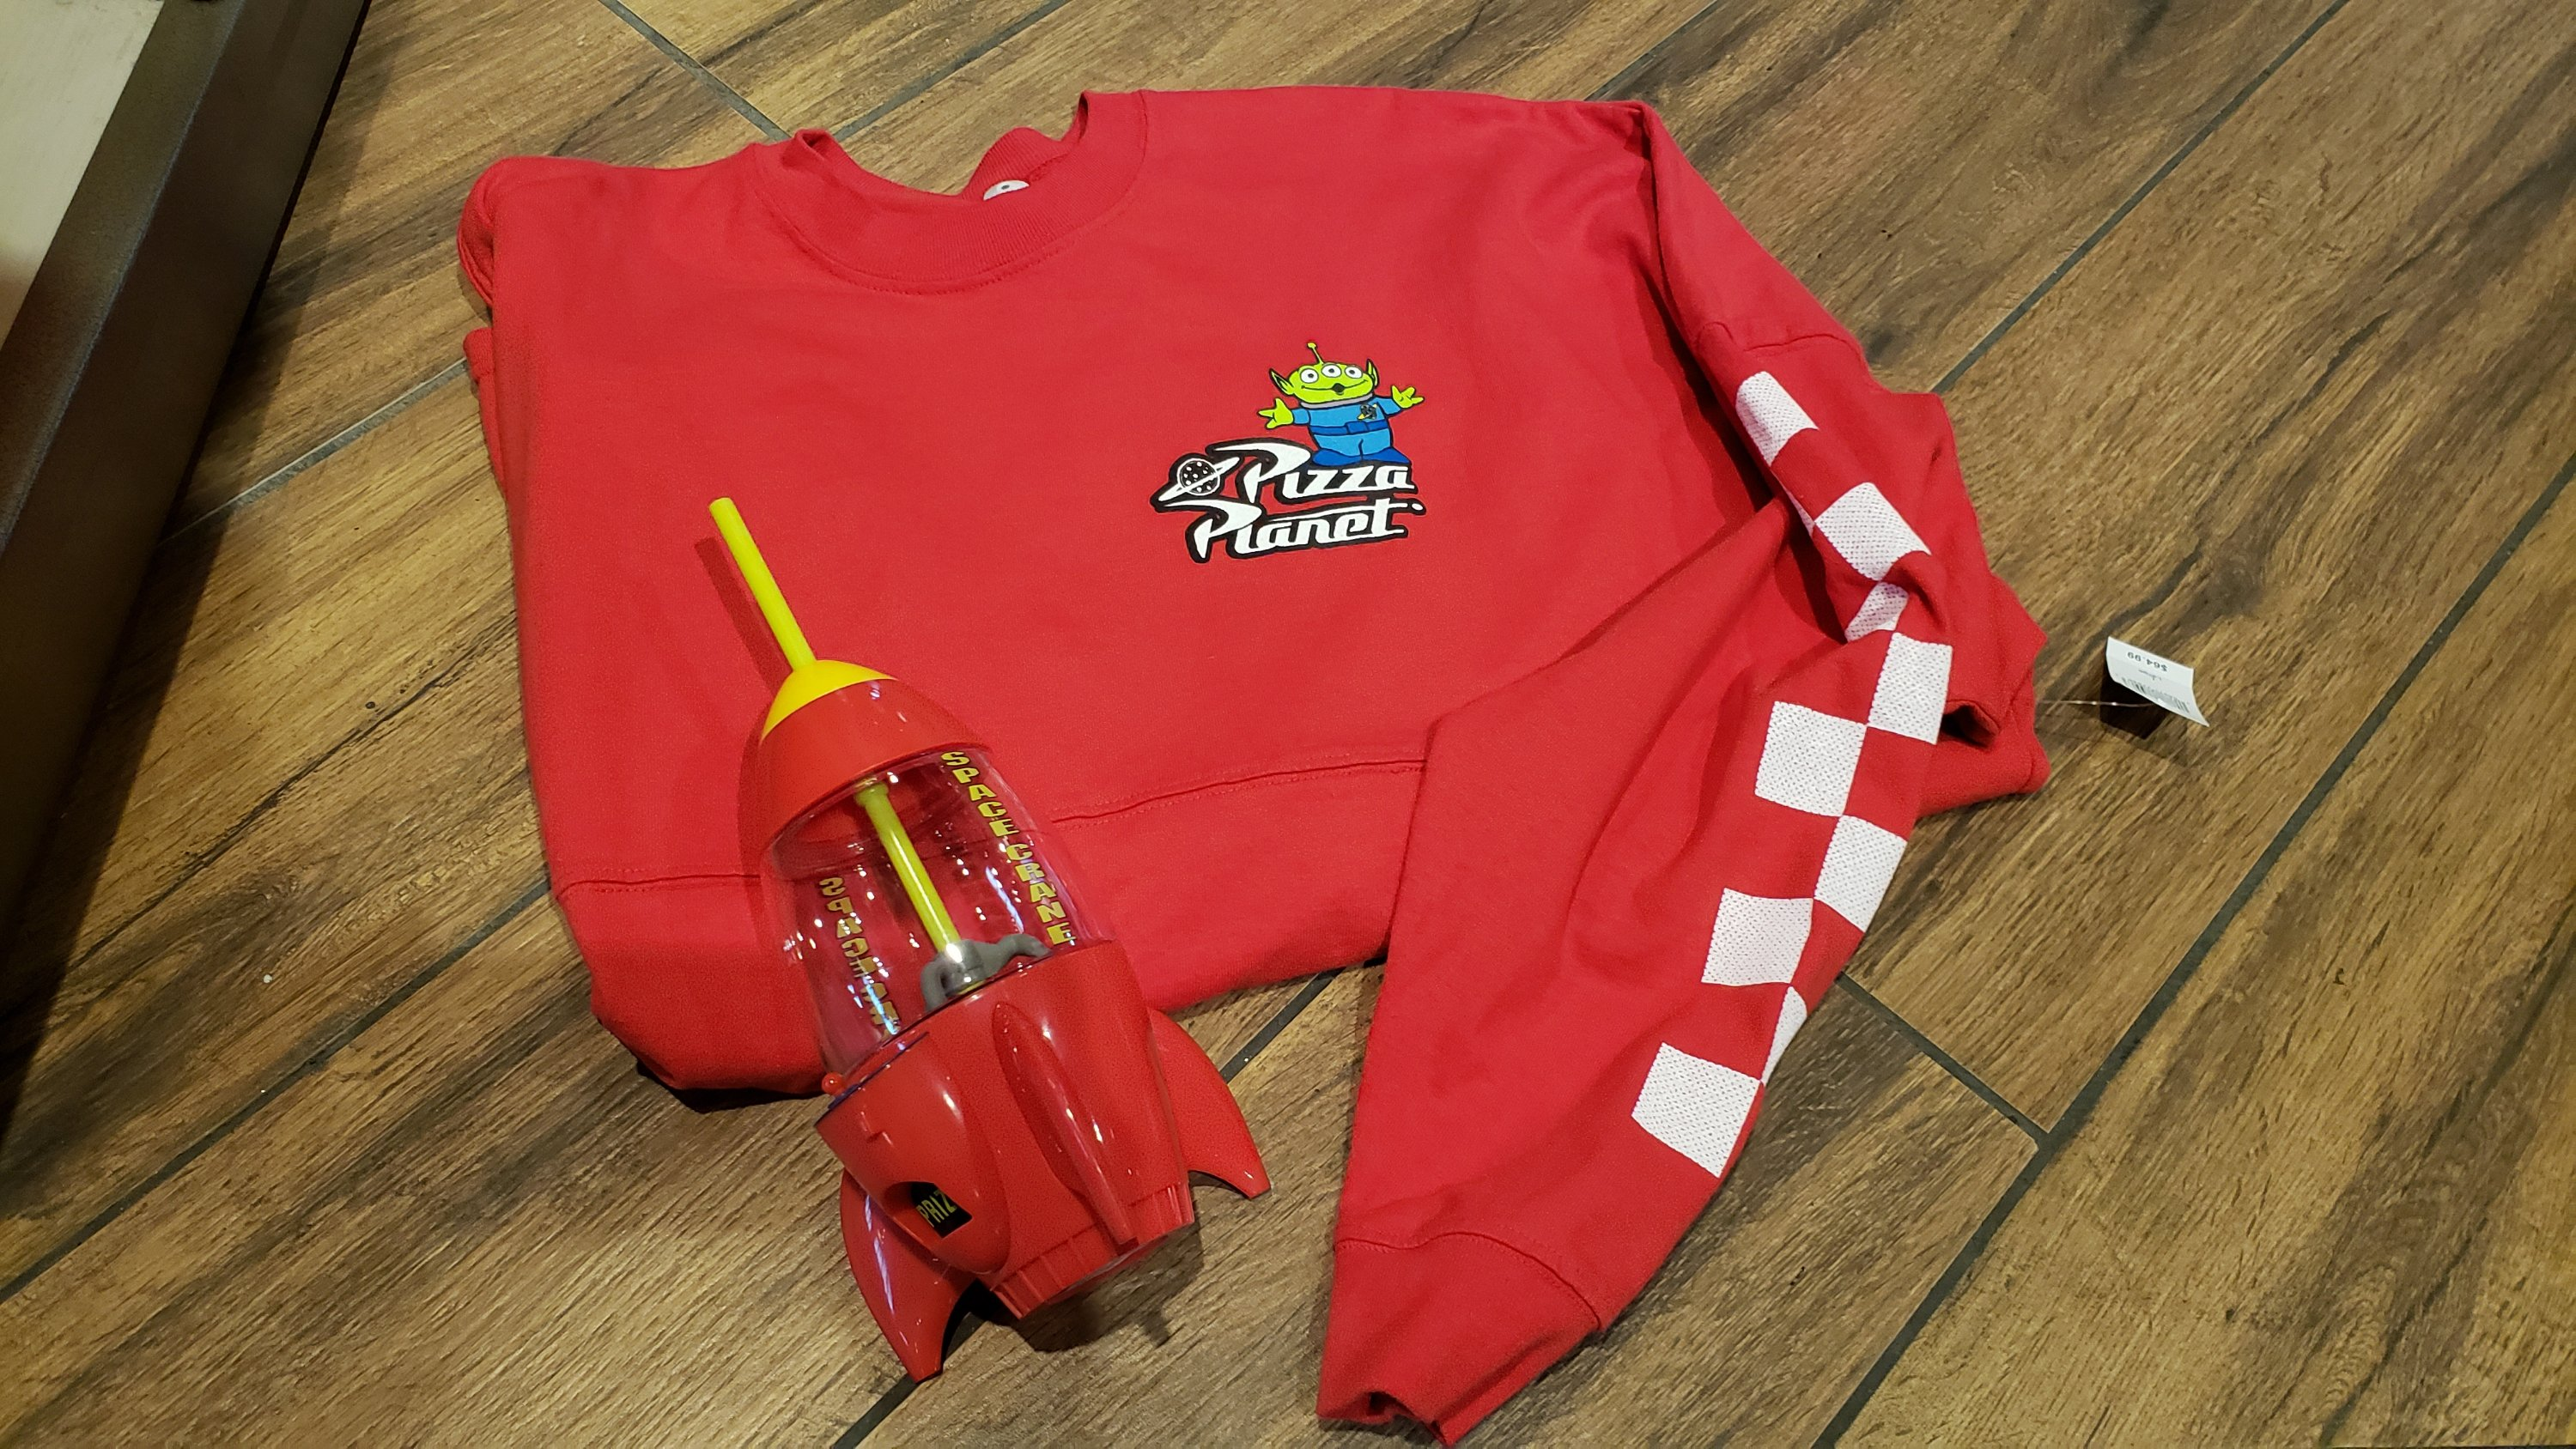 Pizza Planet Spirit Jersey